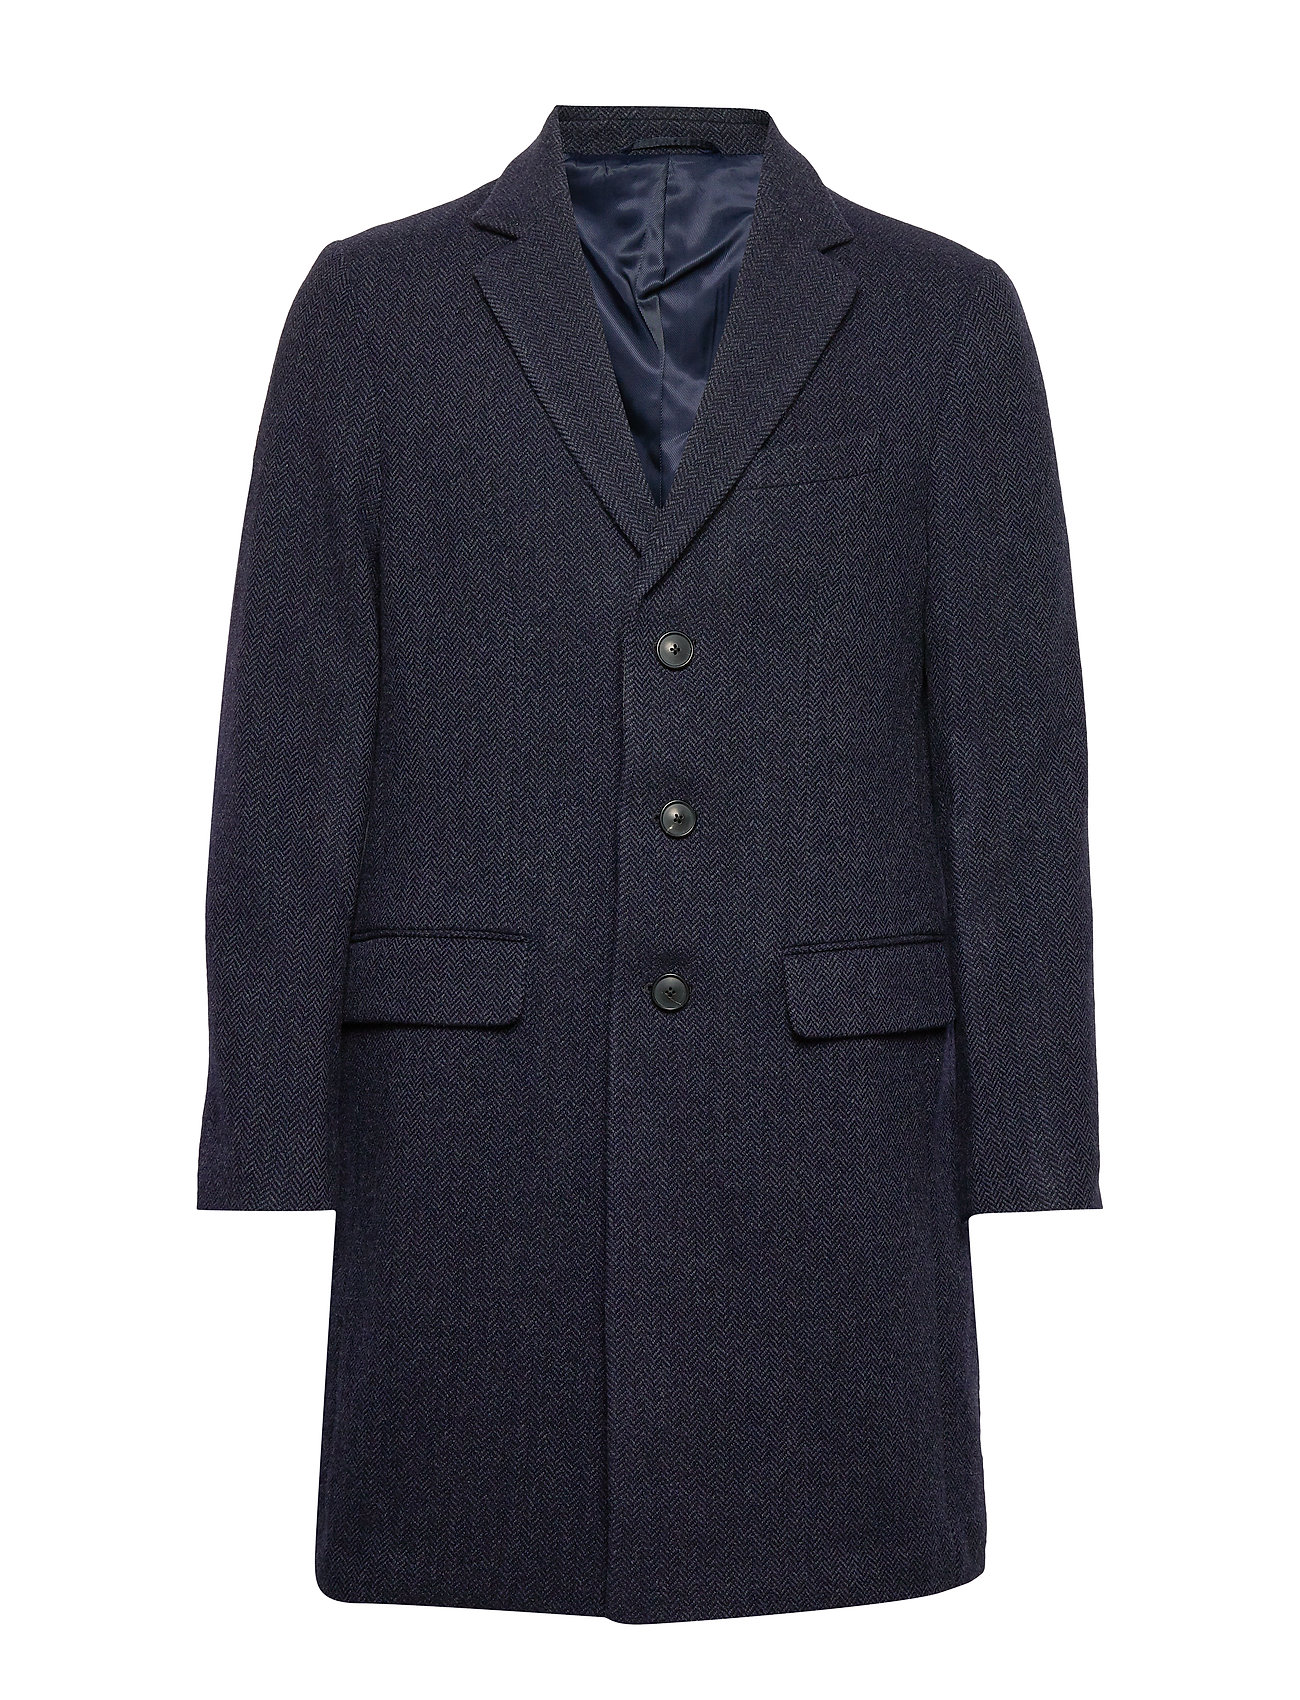 Banana Republic Italian Melton Topcoat - NAVY